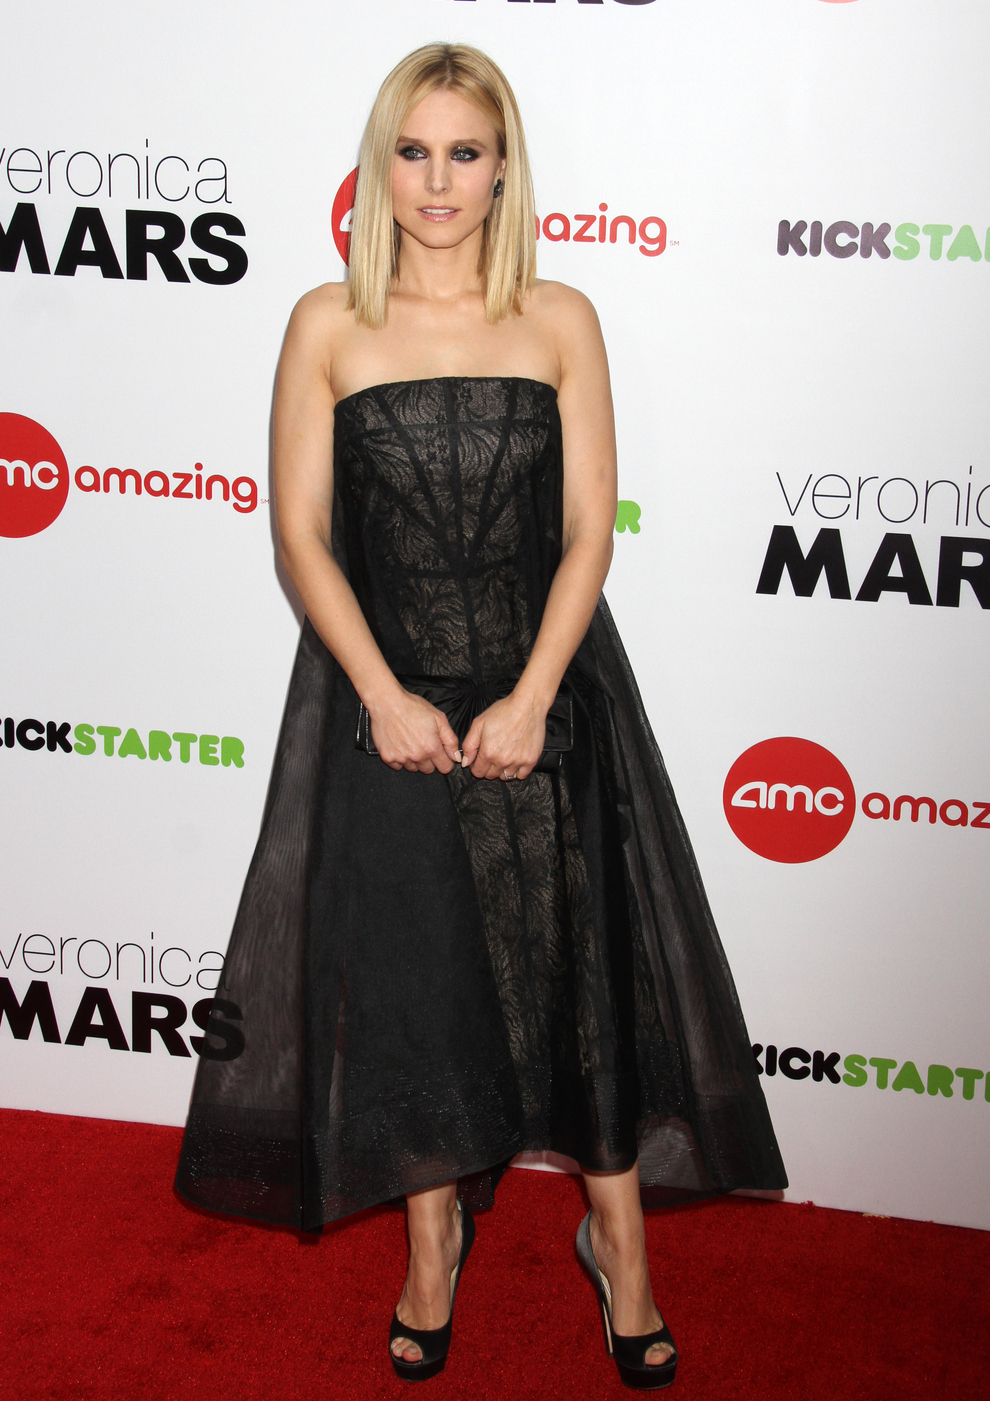 Kristen Bell At The 'Veronica Mars' Screening In New York City